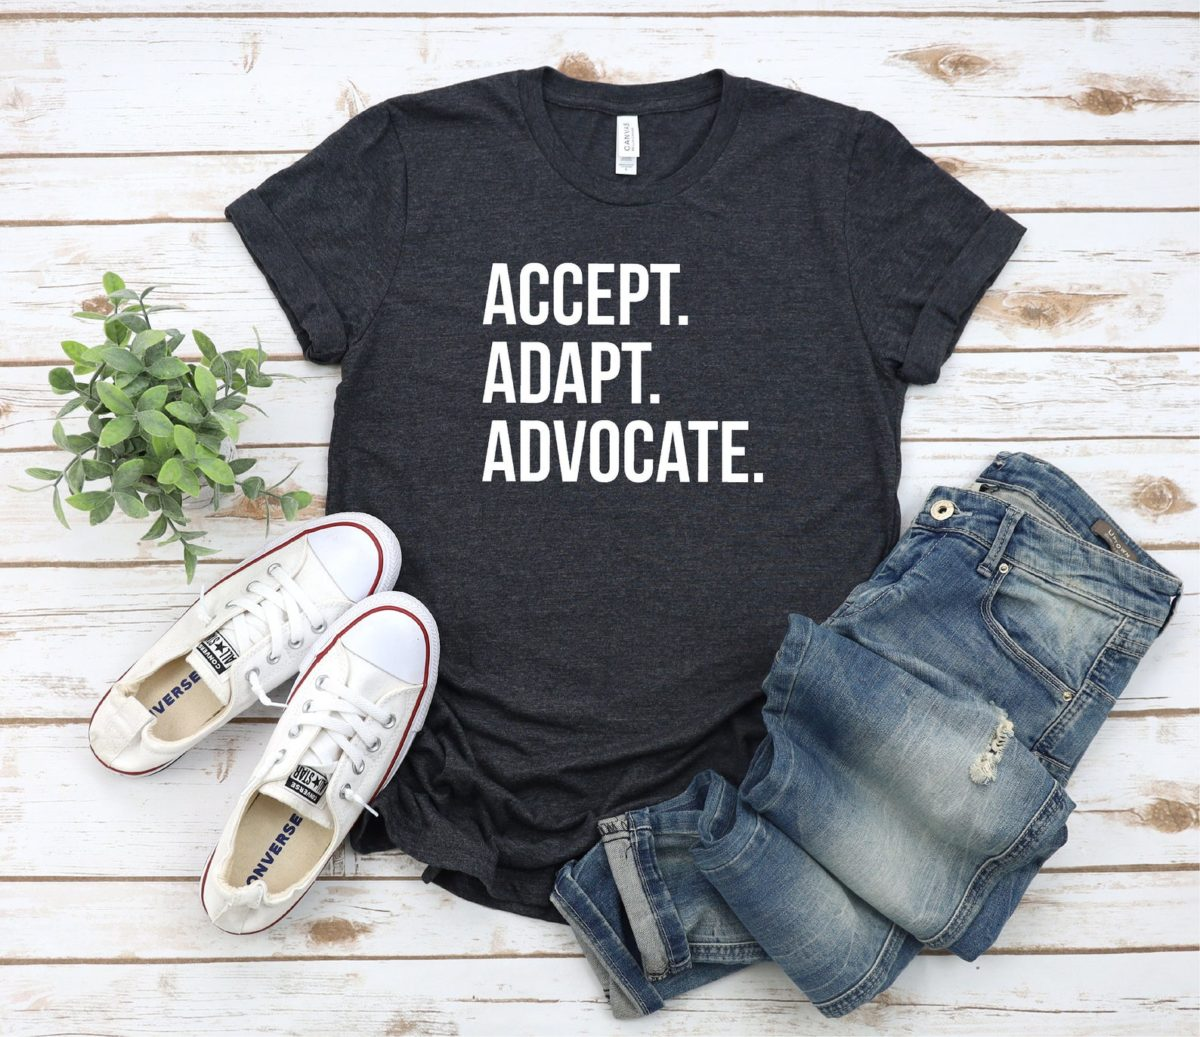 26 awesome etsy t-shirts that send a positive message and make great gifts | parenting questions | mamas uncut il 1588xn.2985595603 ci7c